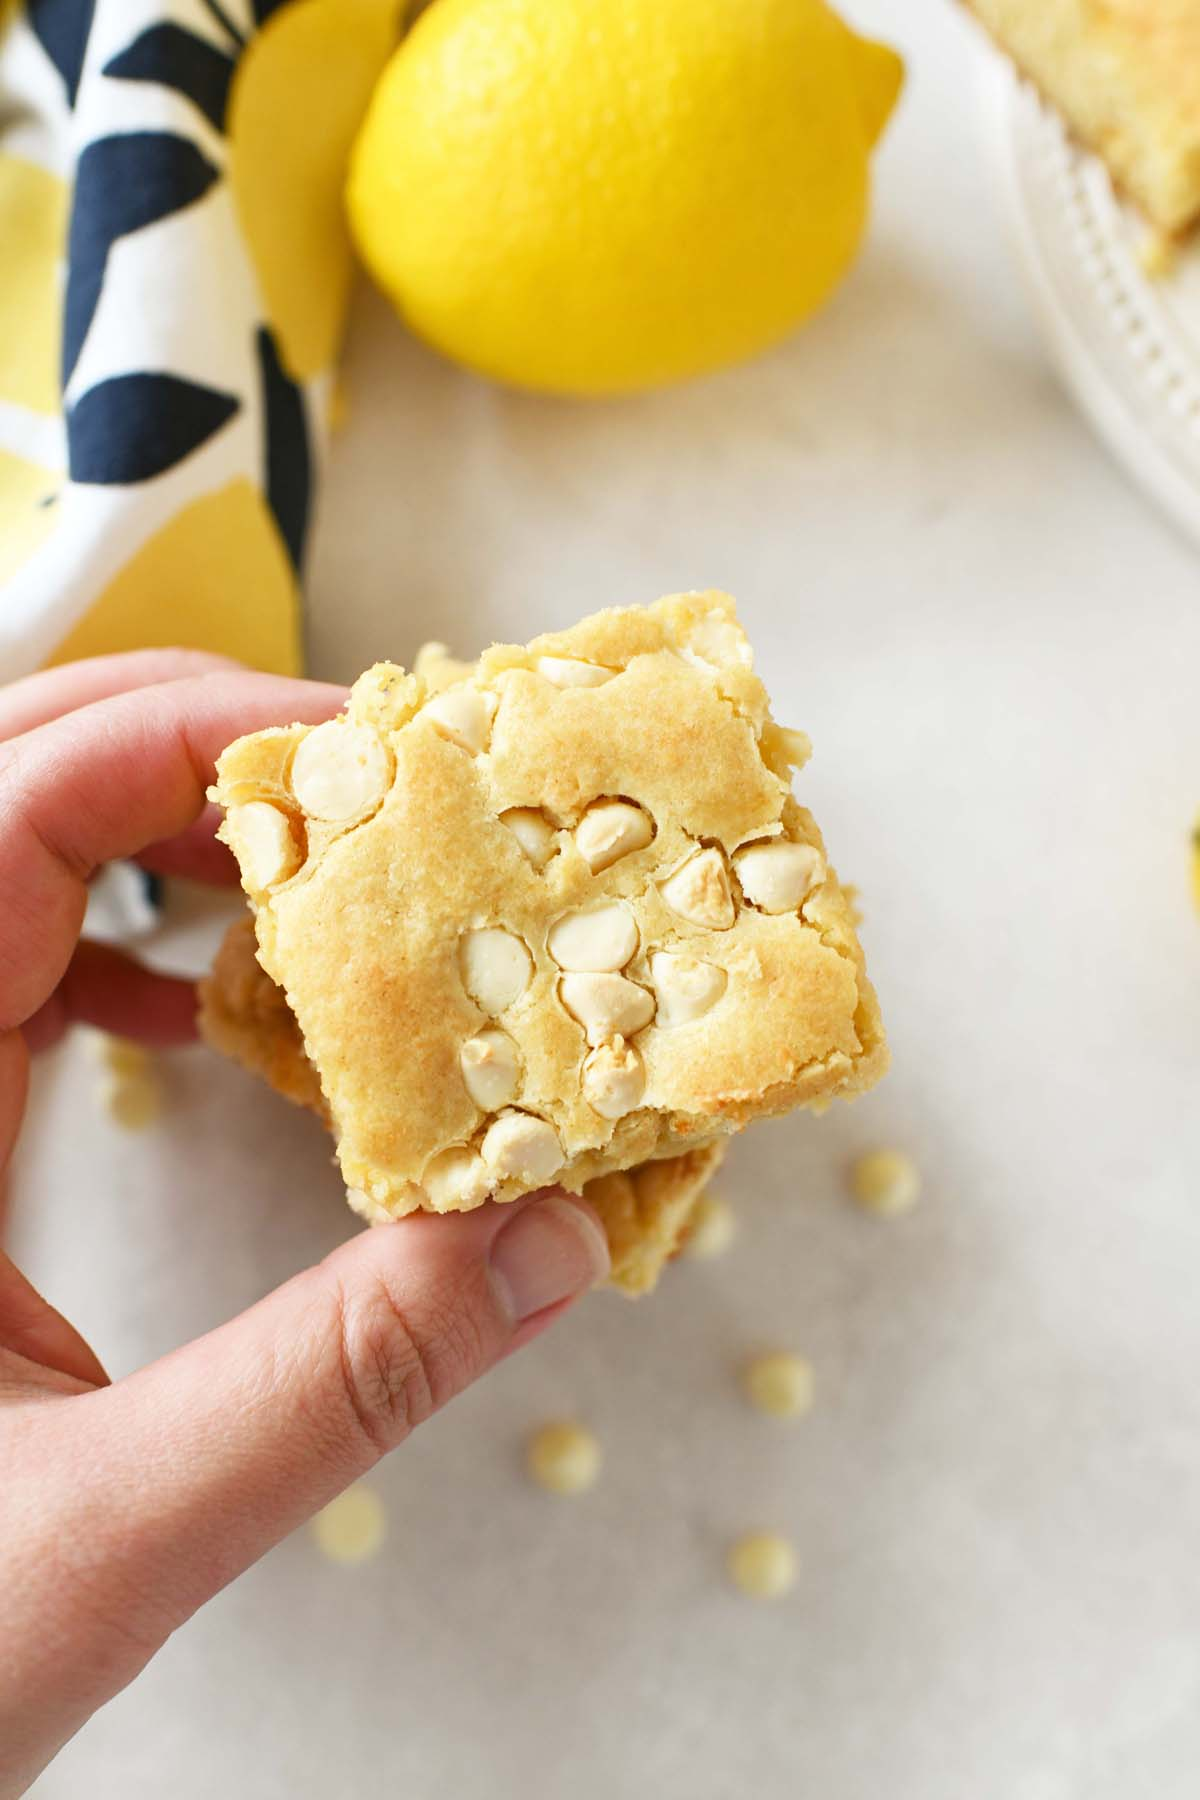 Lemon Brownies on a table with a white hand reaching for one.